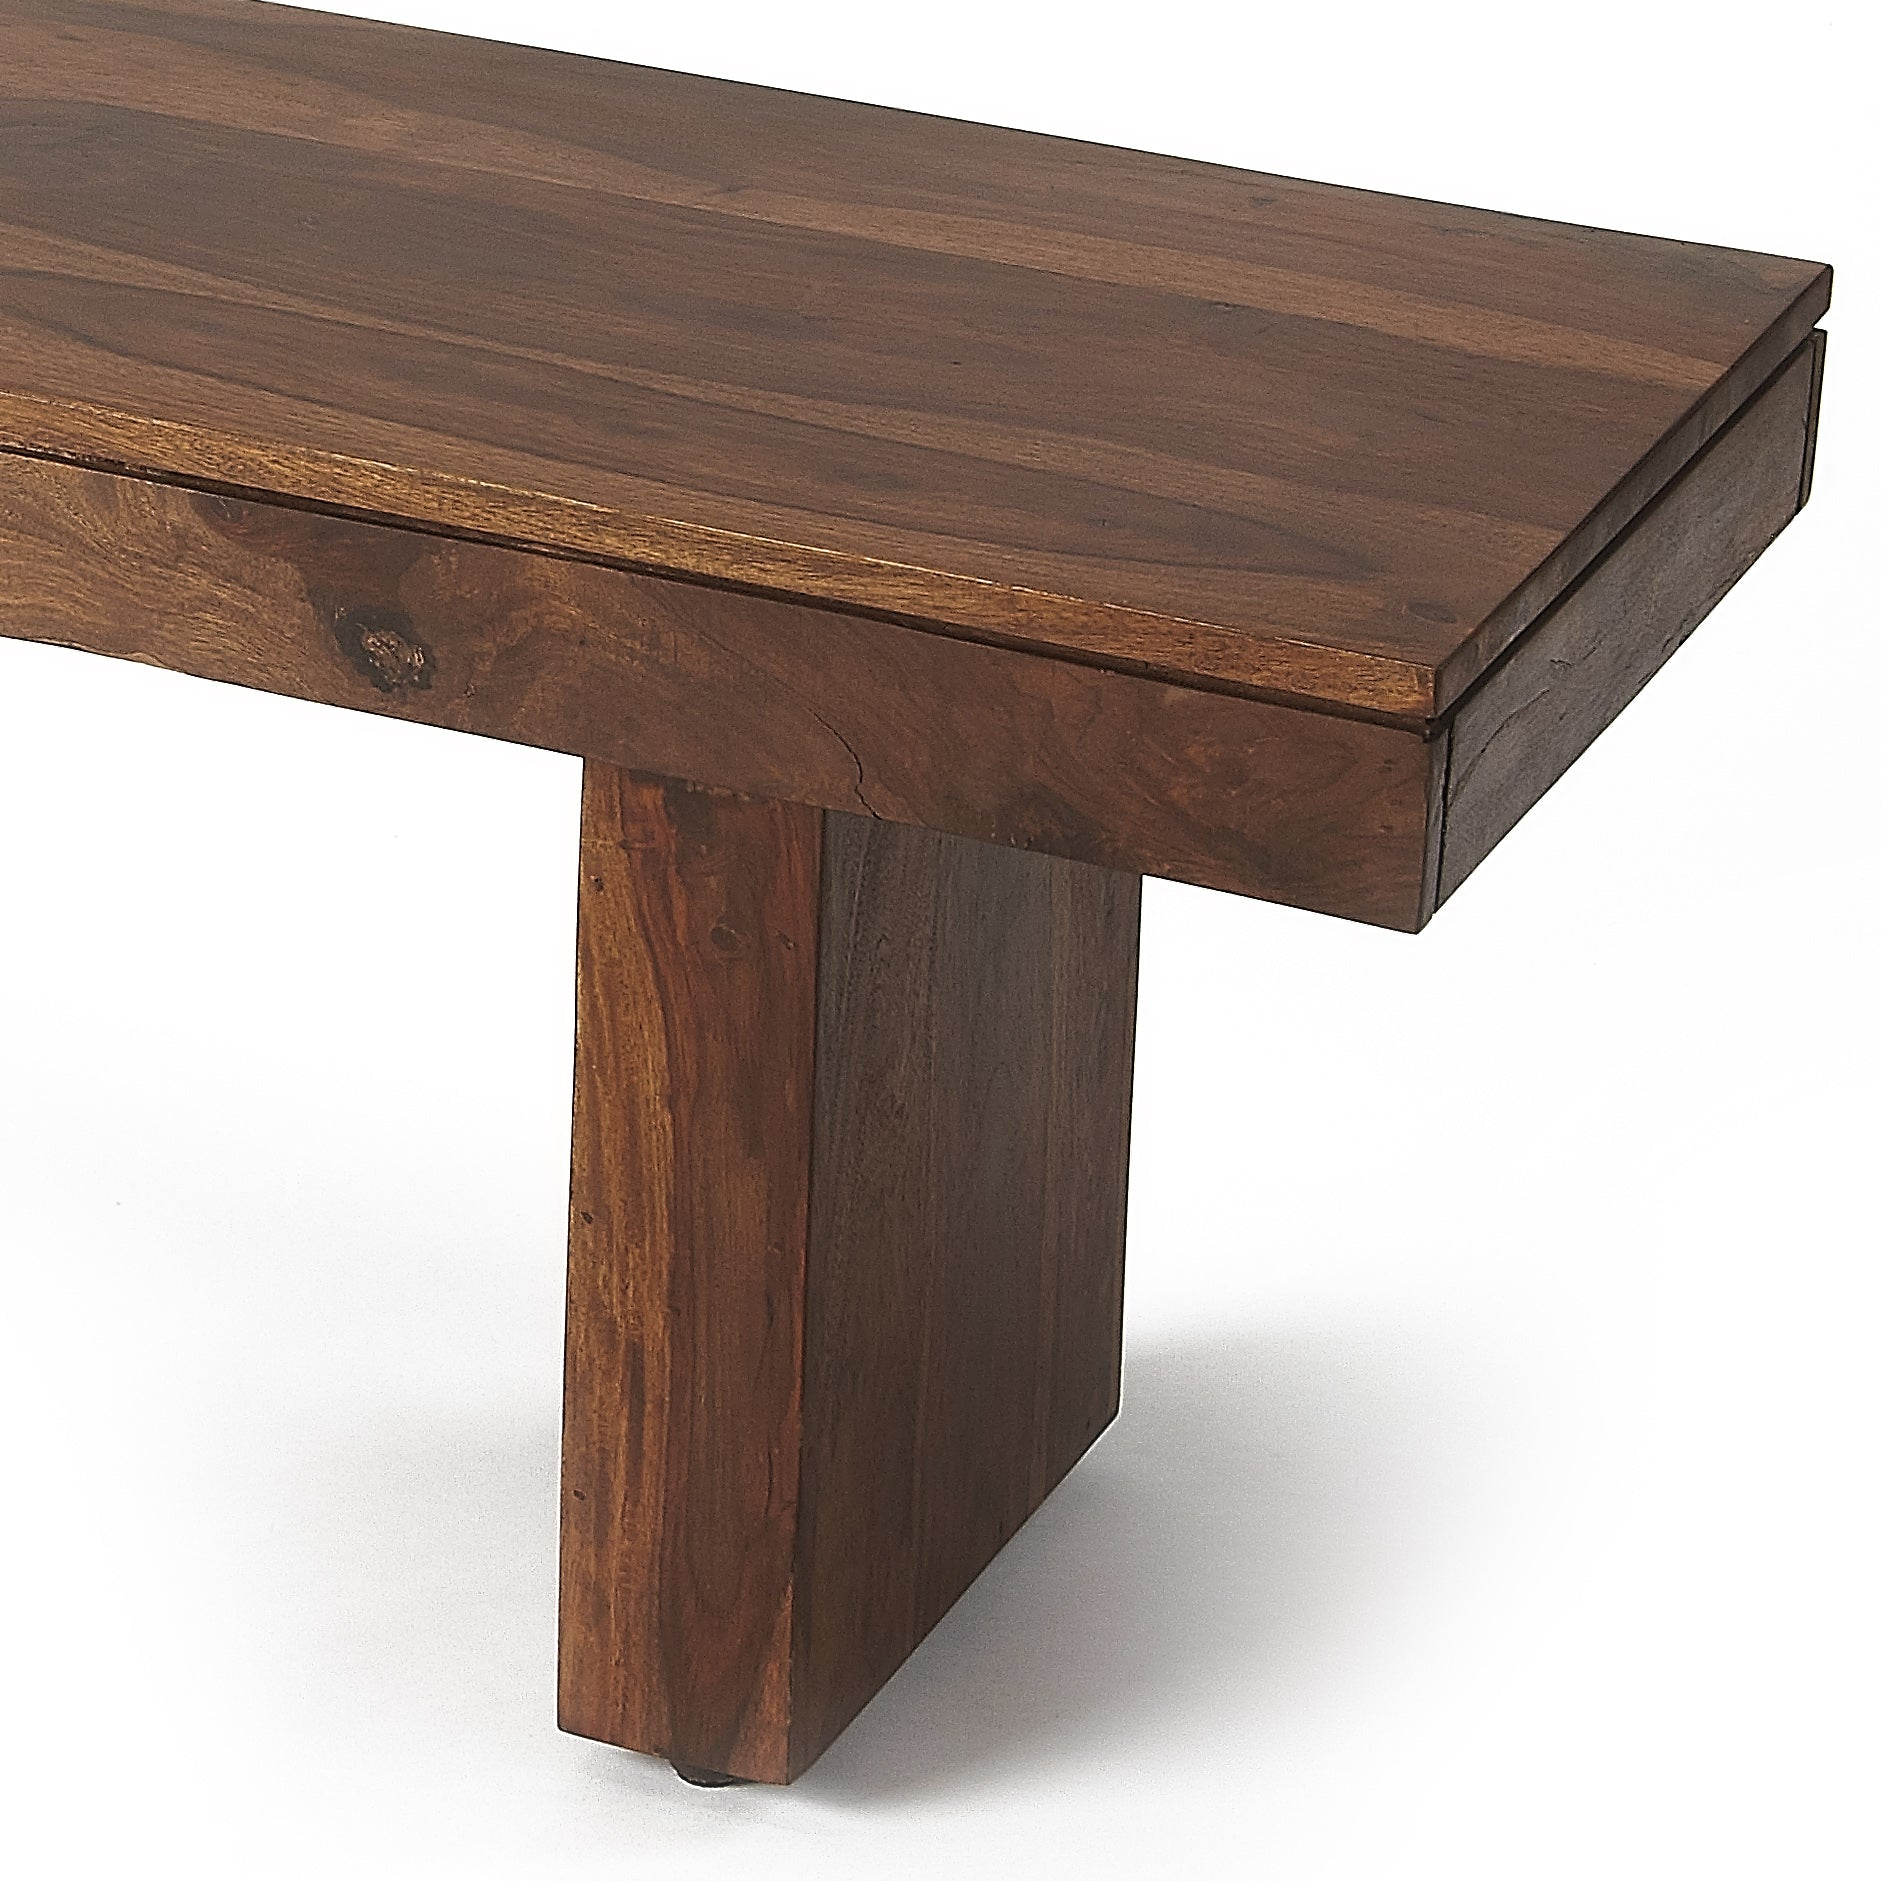 Popular 194 list modern wooden coffee table for Modern wooden coffee tables